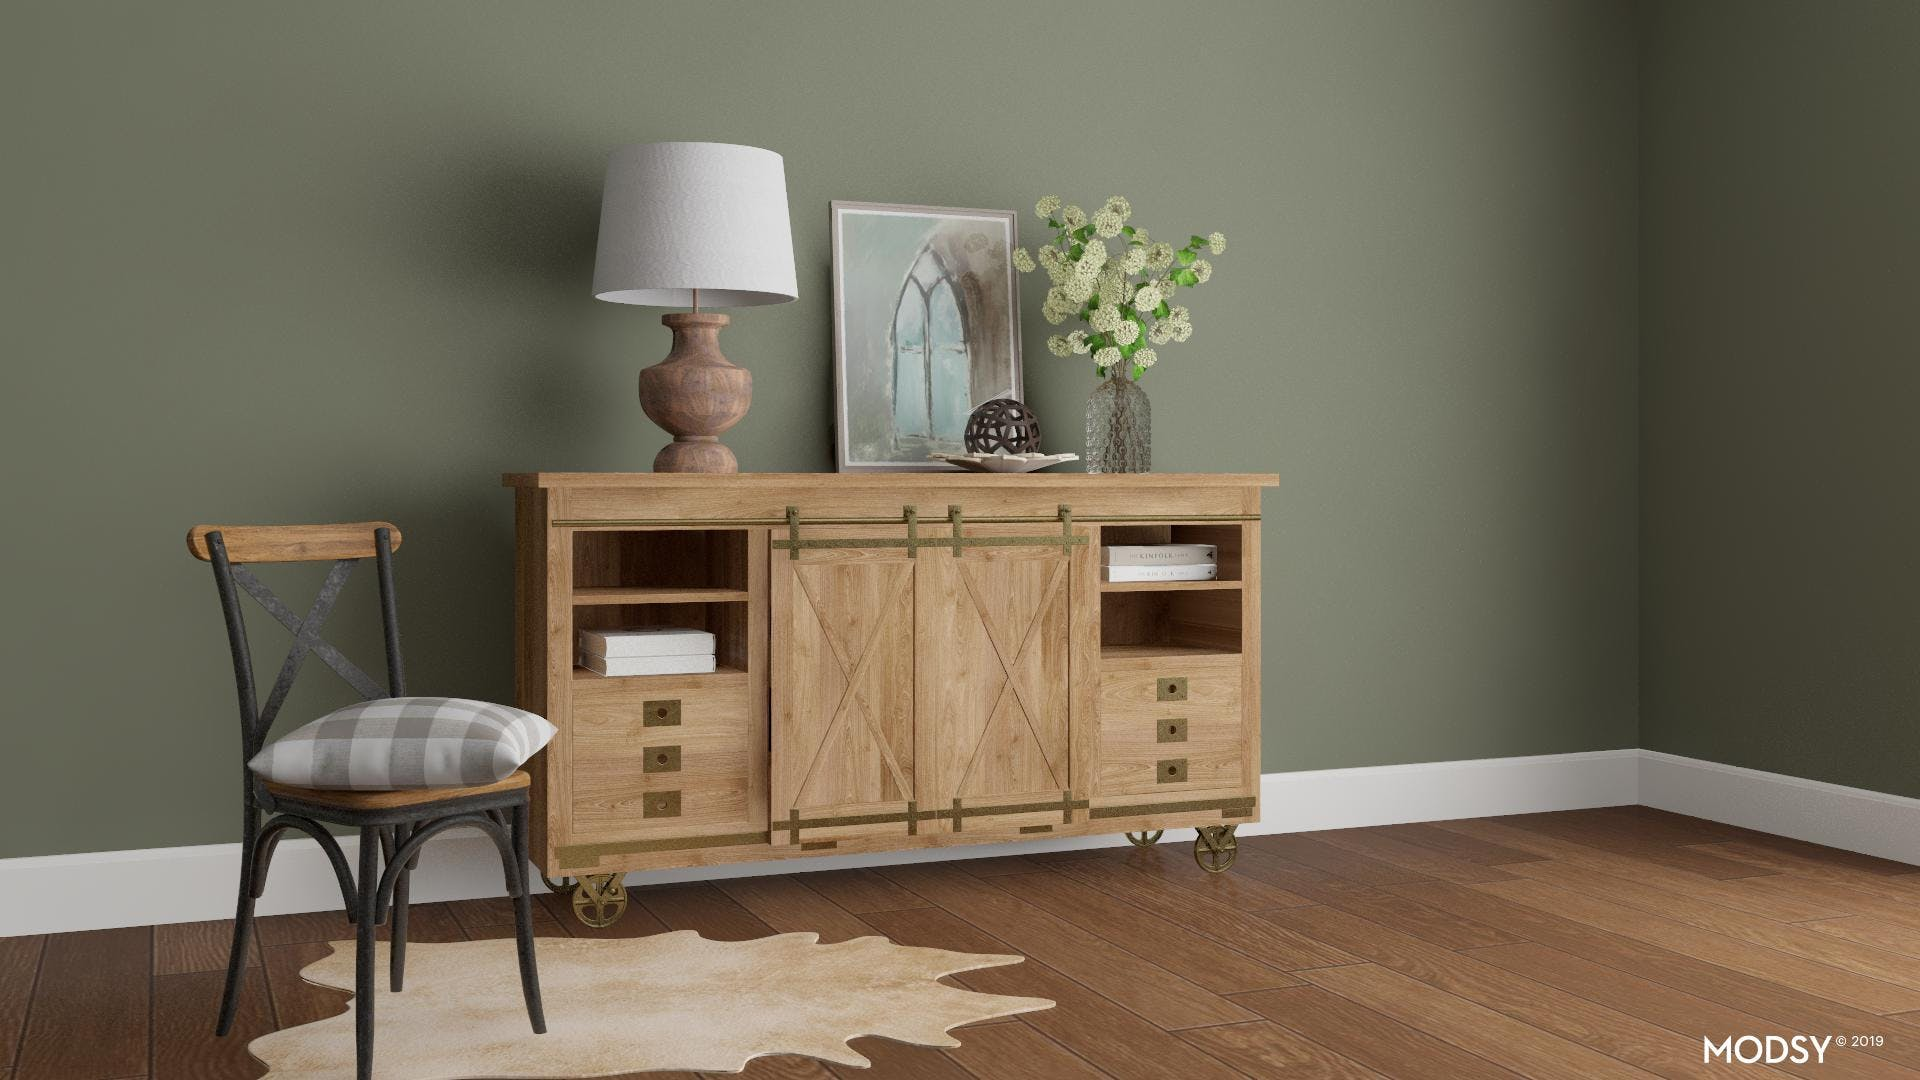 The Statement Sideboard